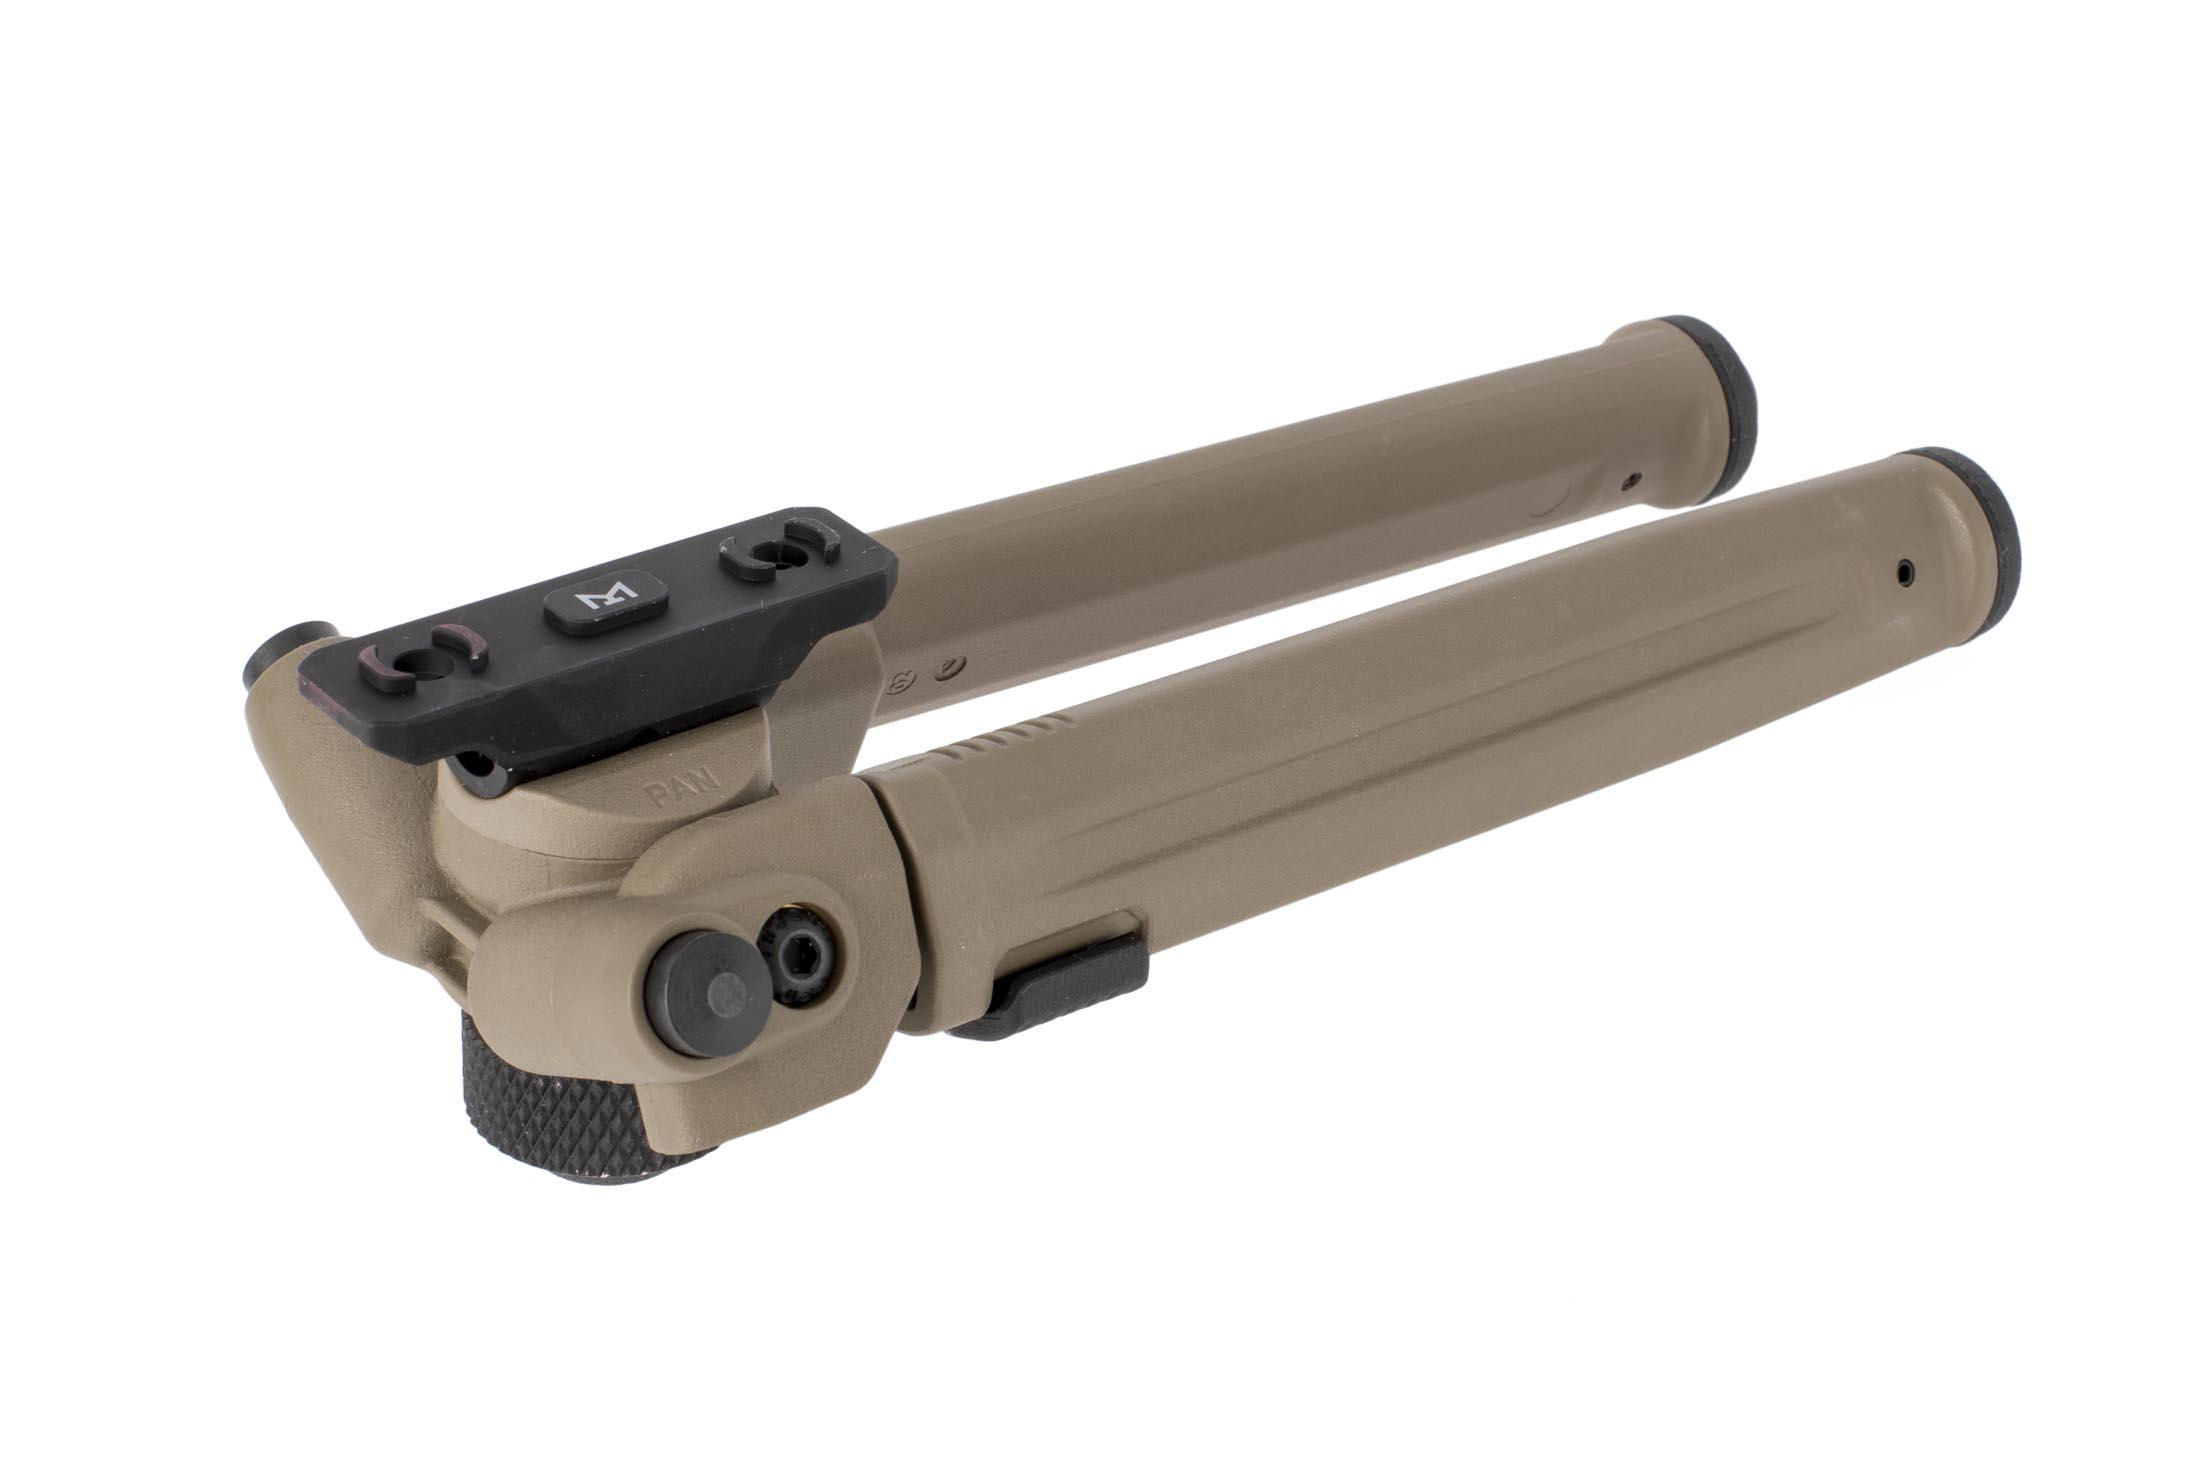 Magpul M-LOK bipods feature legs that can be folded 180-degrees for optimal stowage positions and ideal leg positions